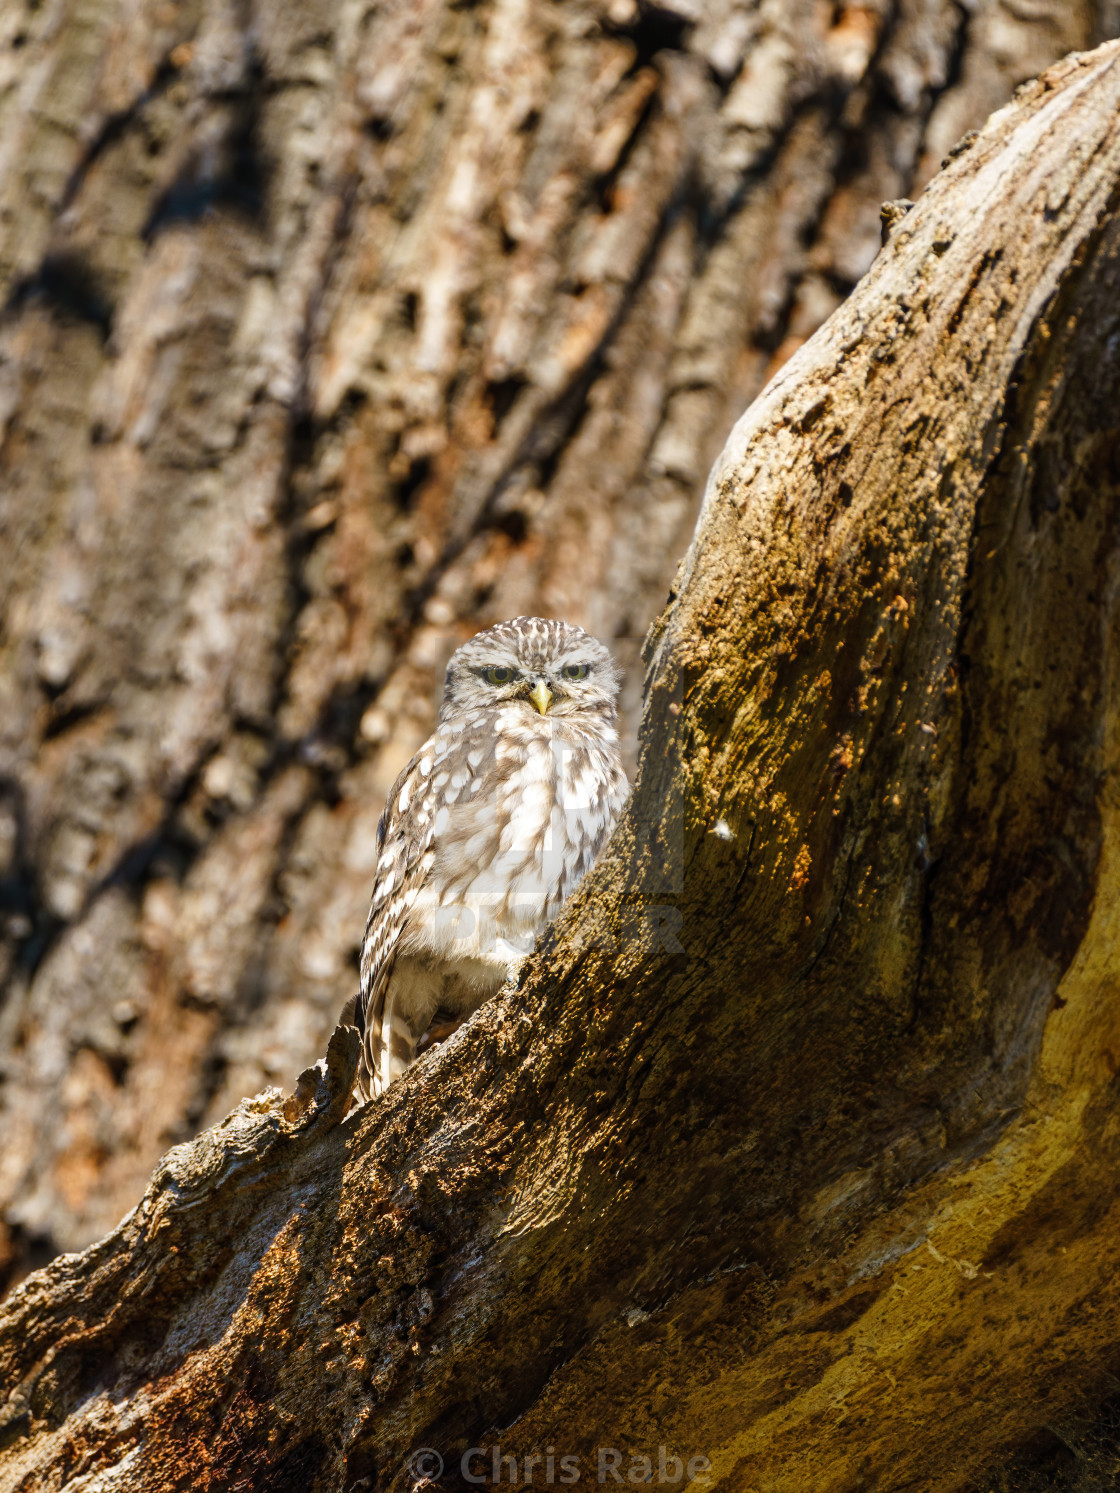 """Little Owl (Athene noctua) staring intently at camera, taken in England"" stock image"